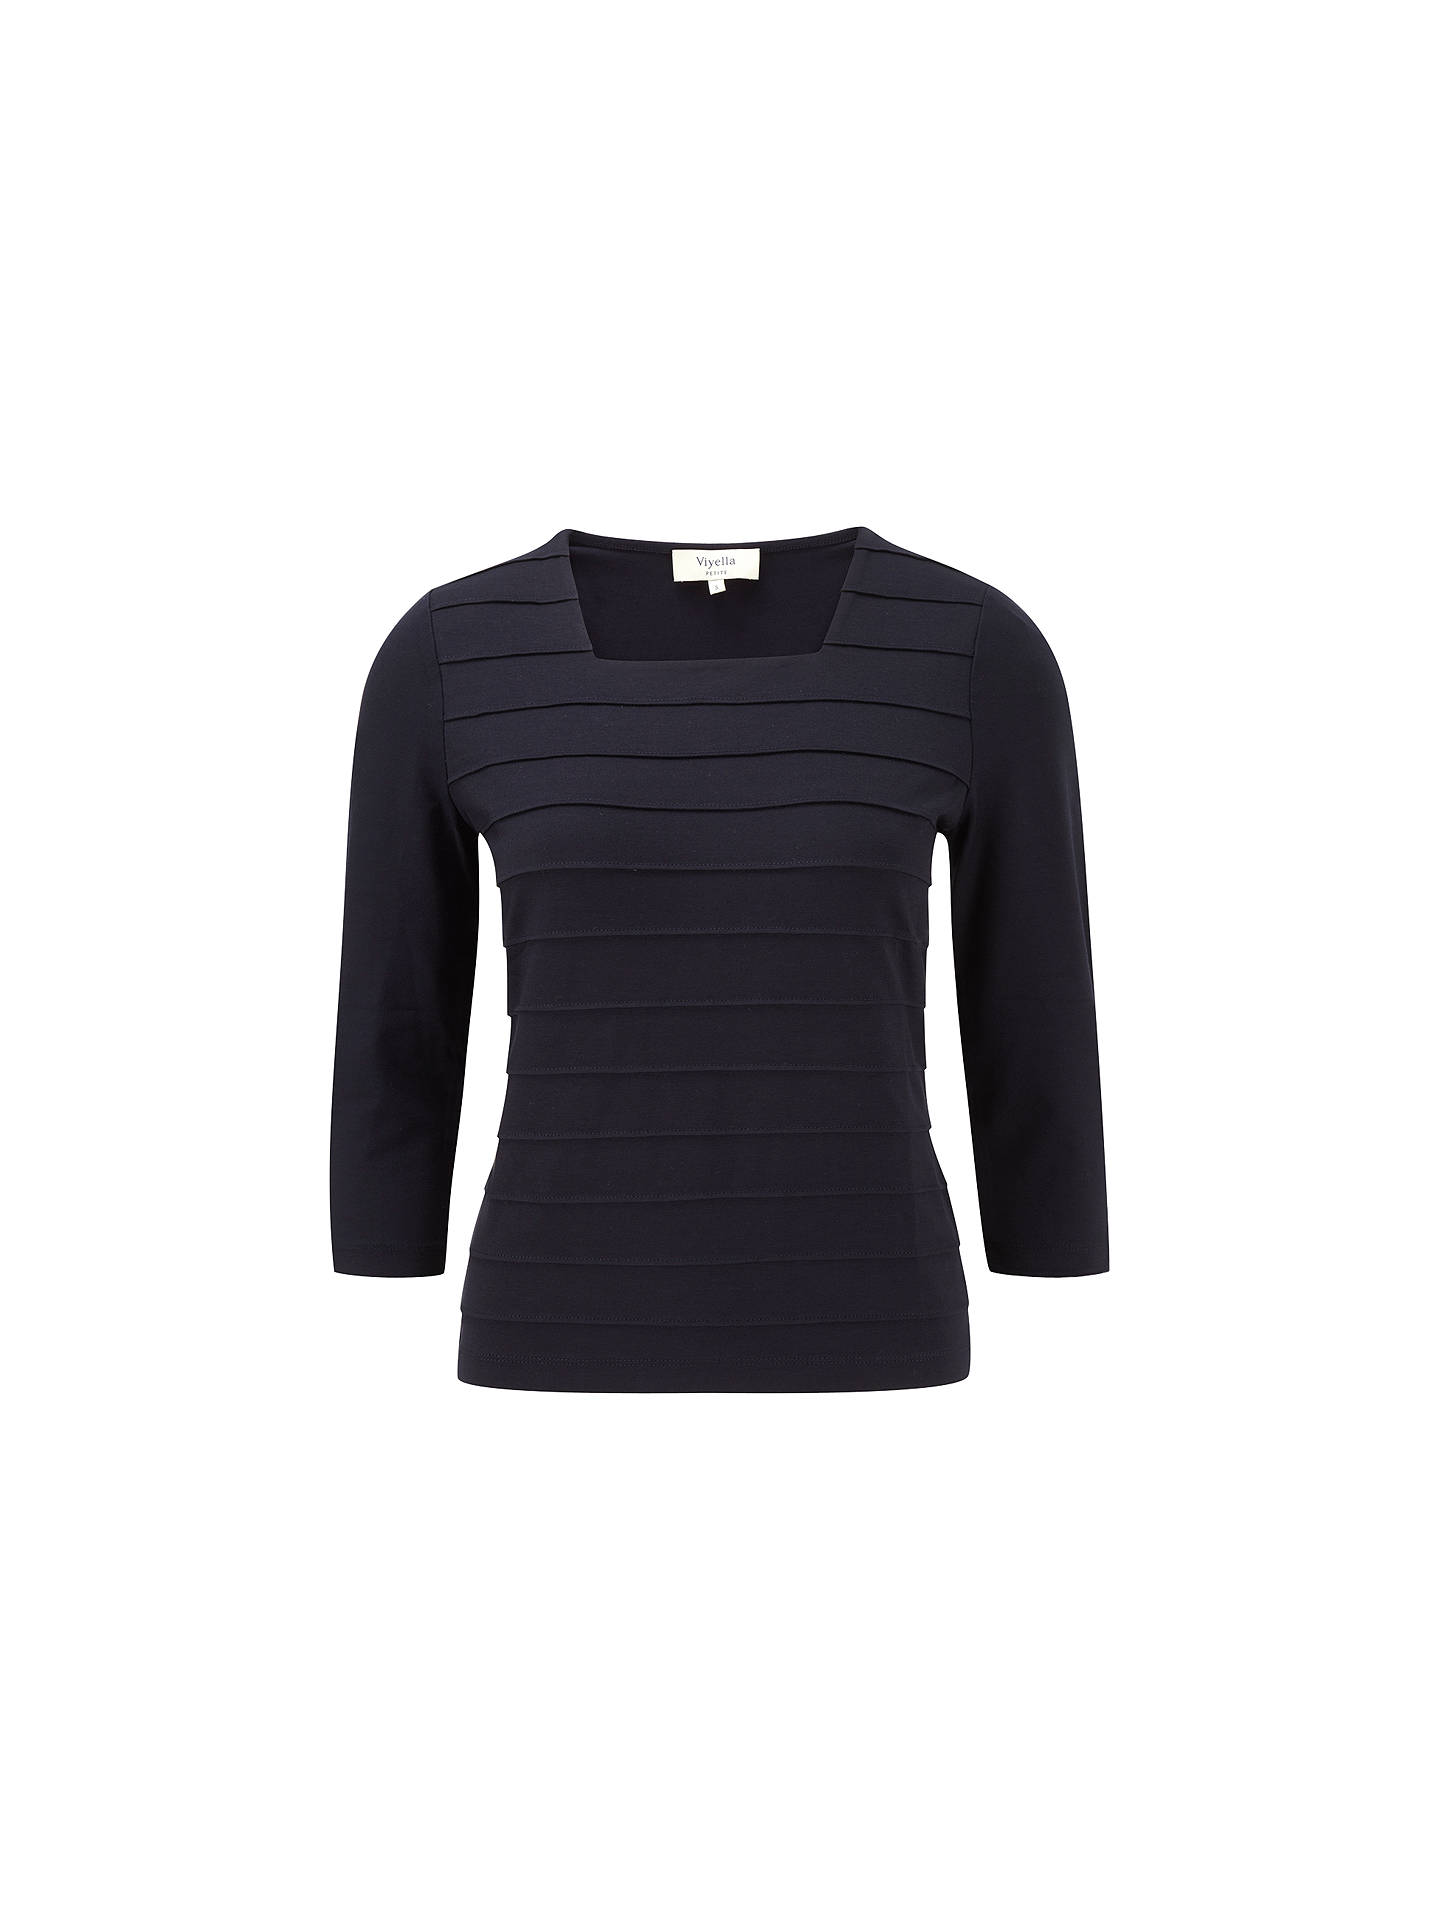 Viyella Petite Jersey Top Navy At John Lewis Partners